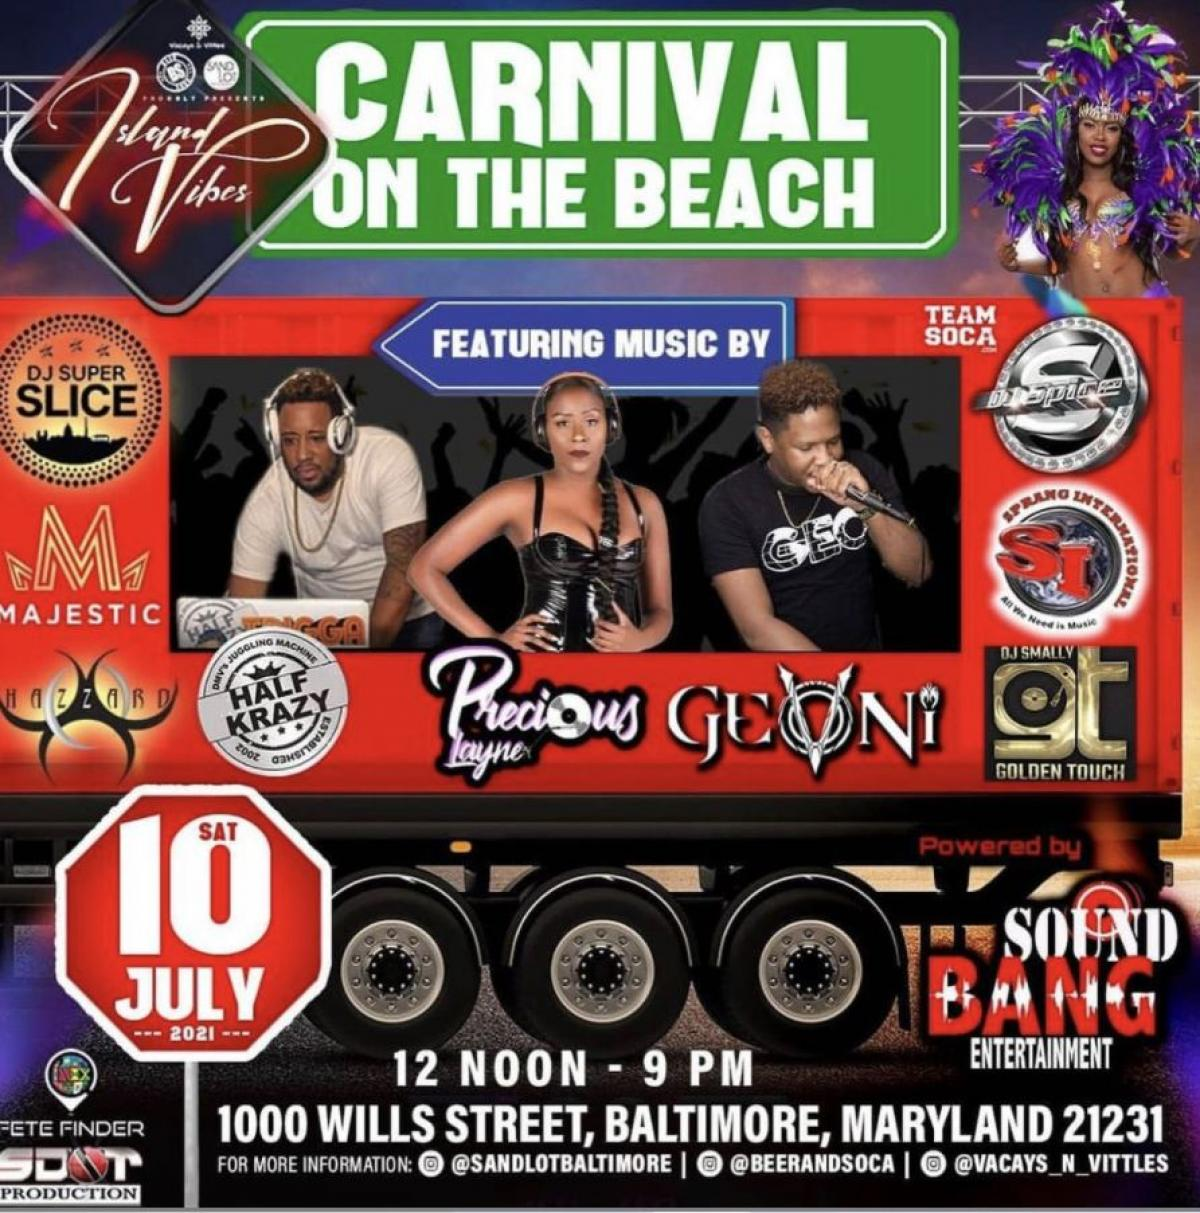 Carnival On The Beach flyer or graphic.